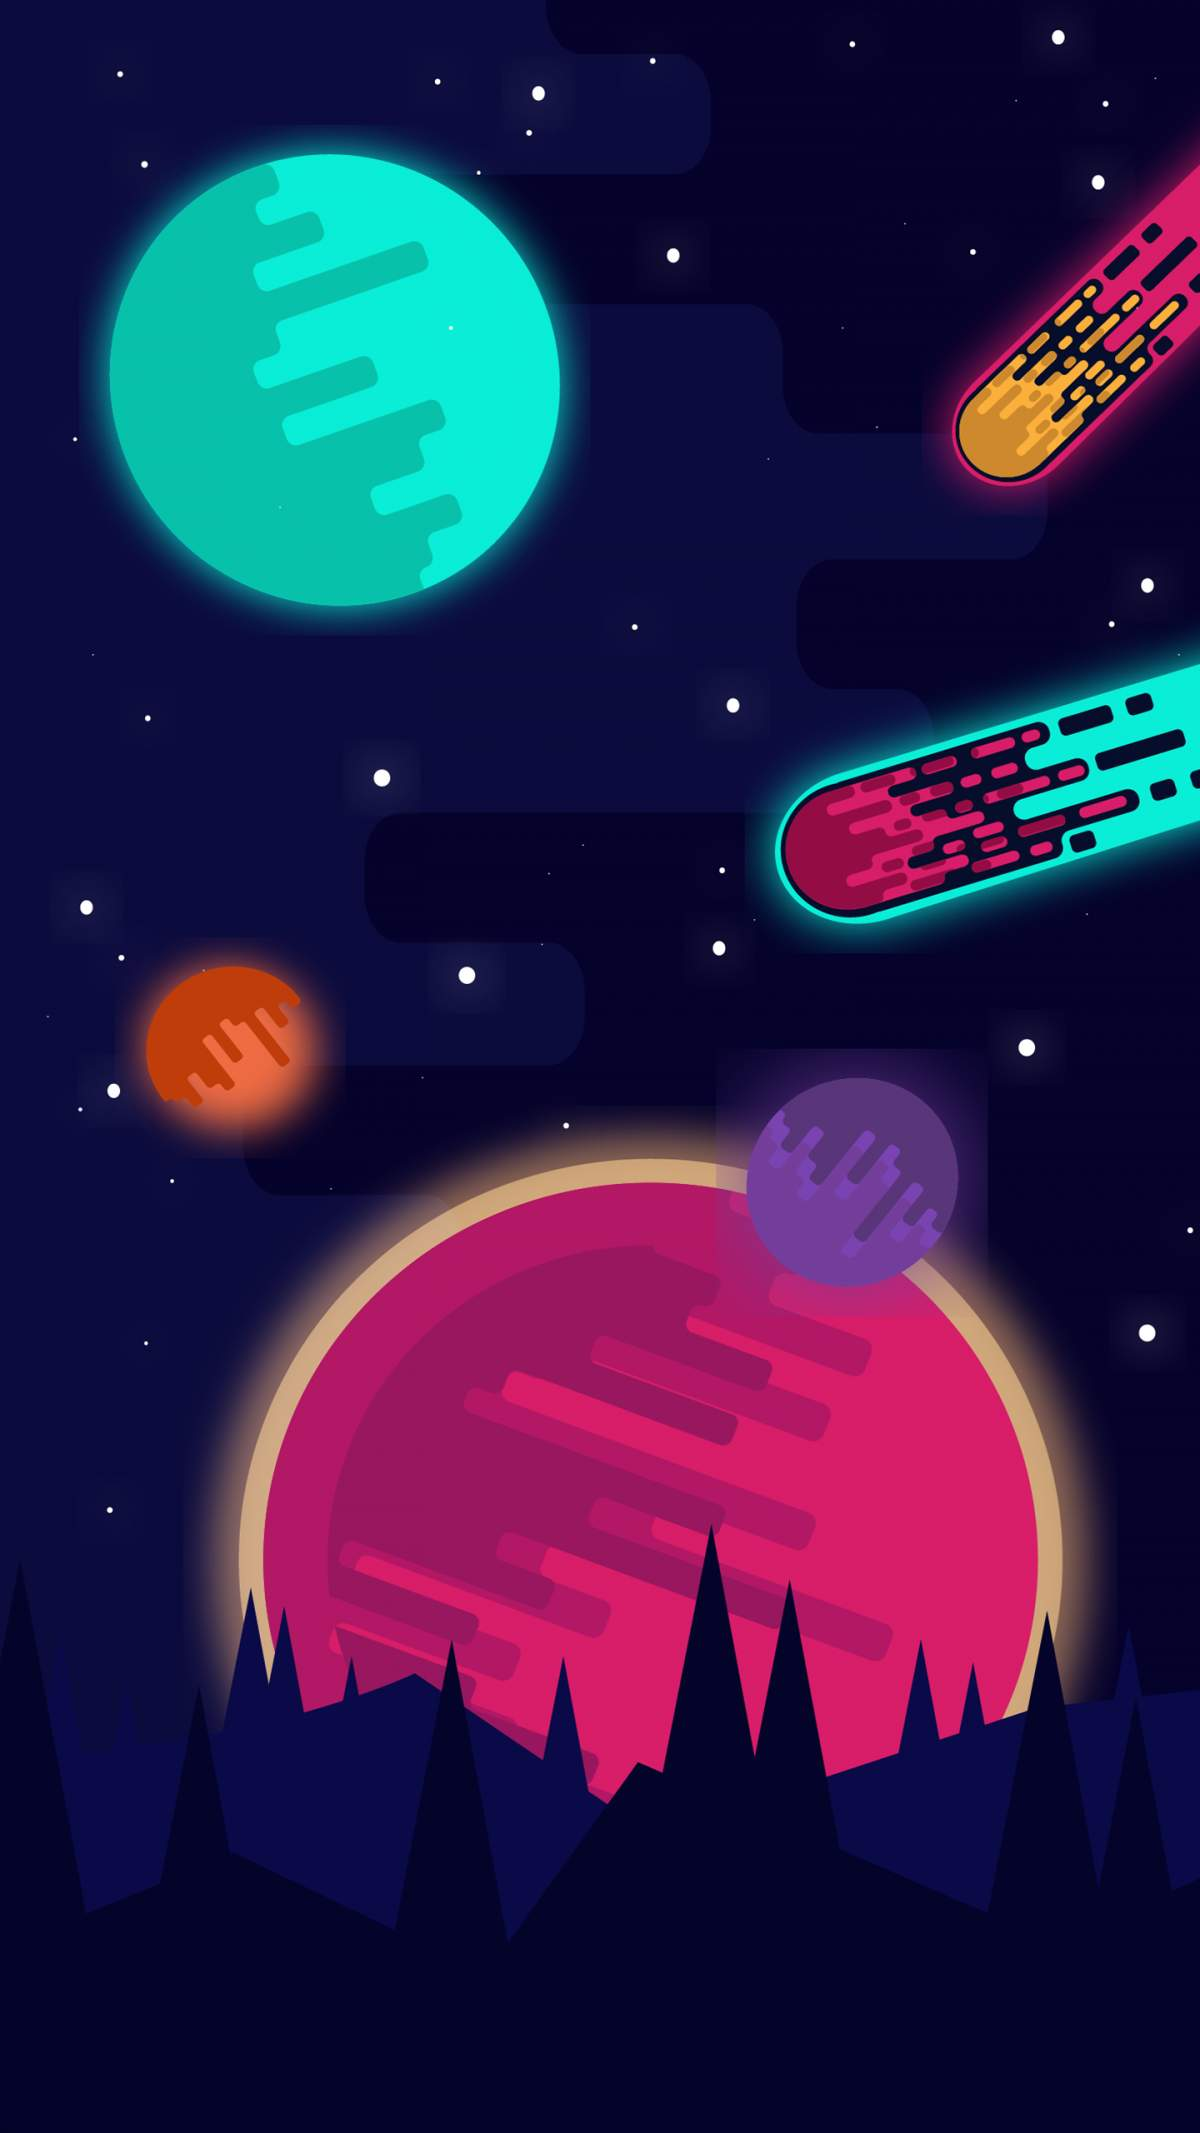 Planets and Meteors iPhone Wallpaper